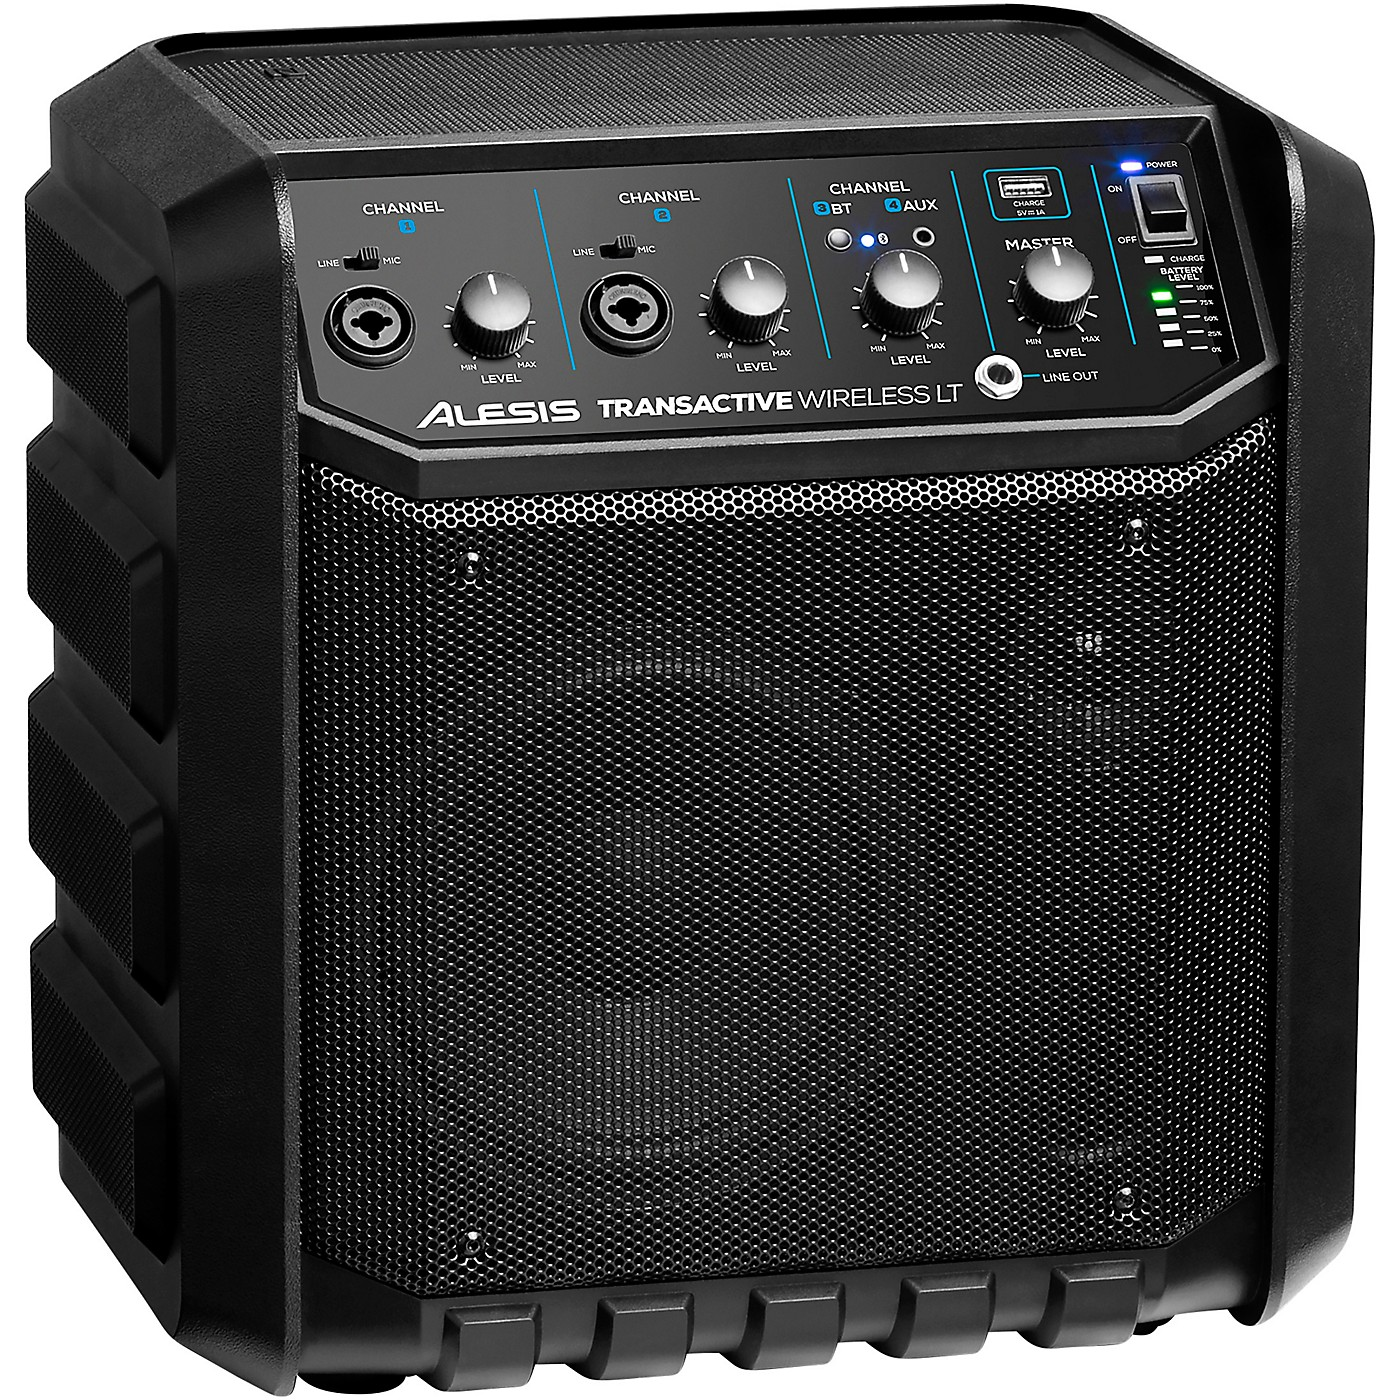 Alesis TransActive Wireless LT Portable PA Bluetooth Speaker With Rechargeable Battery thumbnail